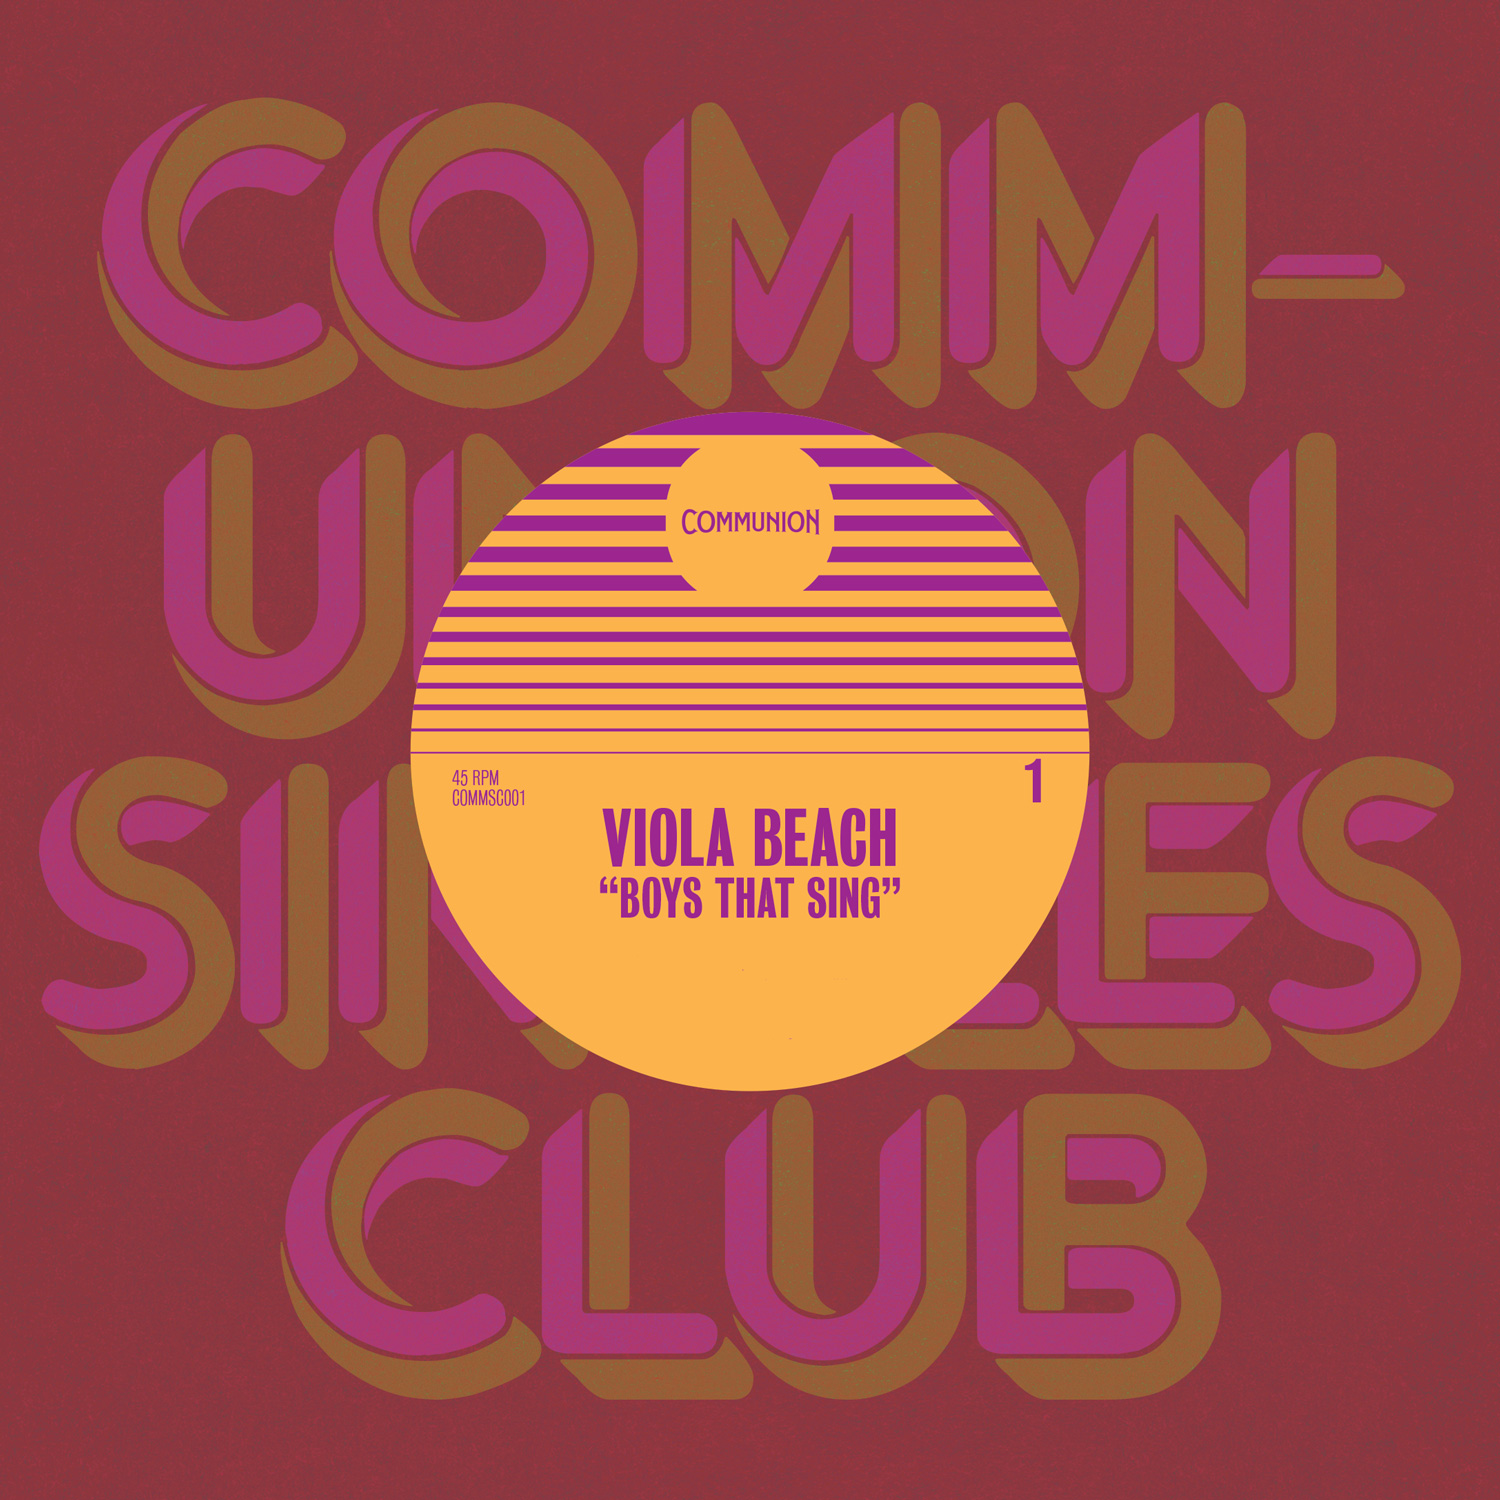 Communion Singles Club No. 1 - Viola Beach